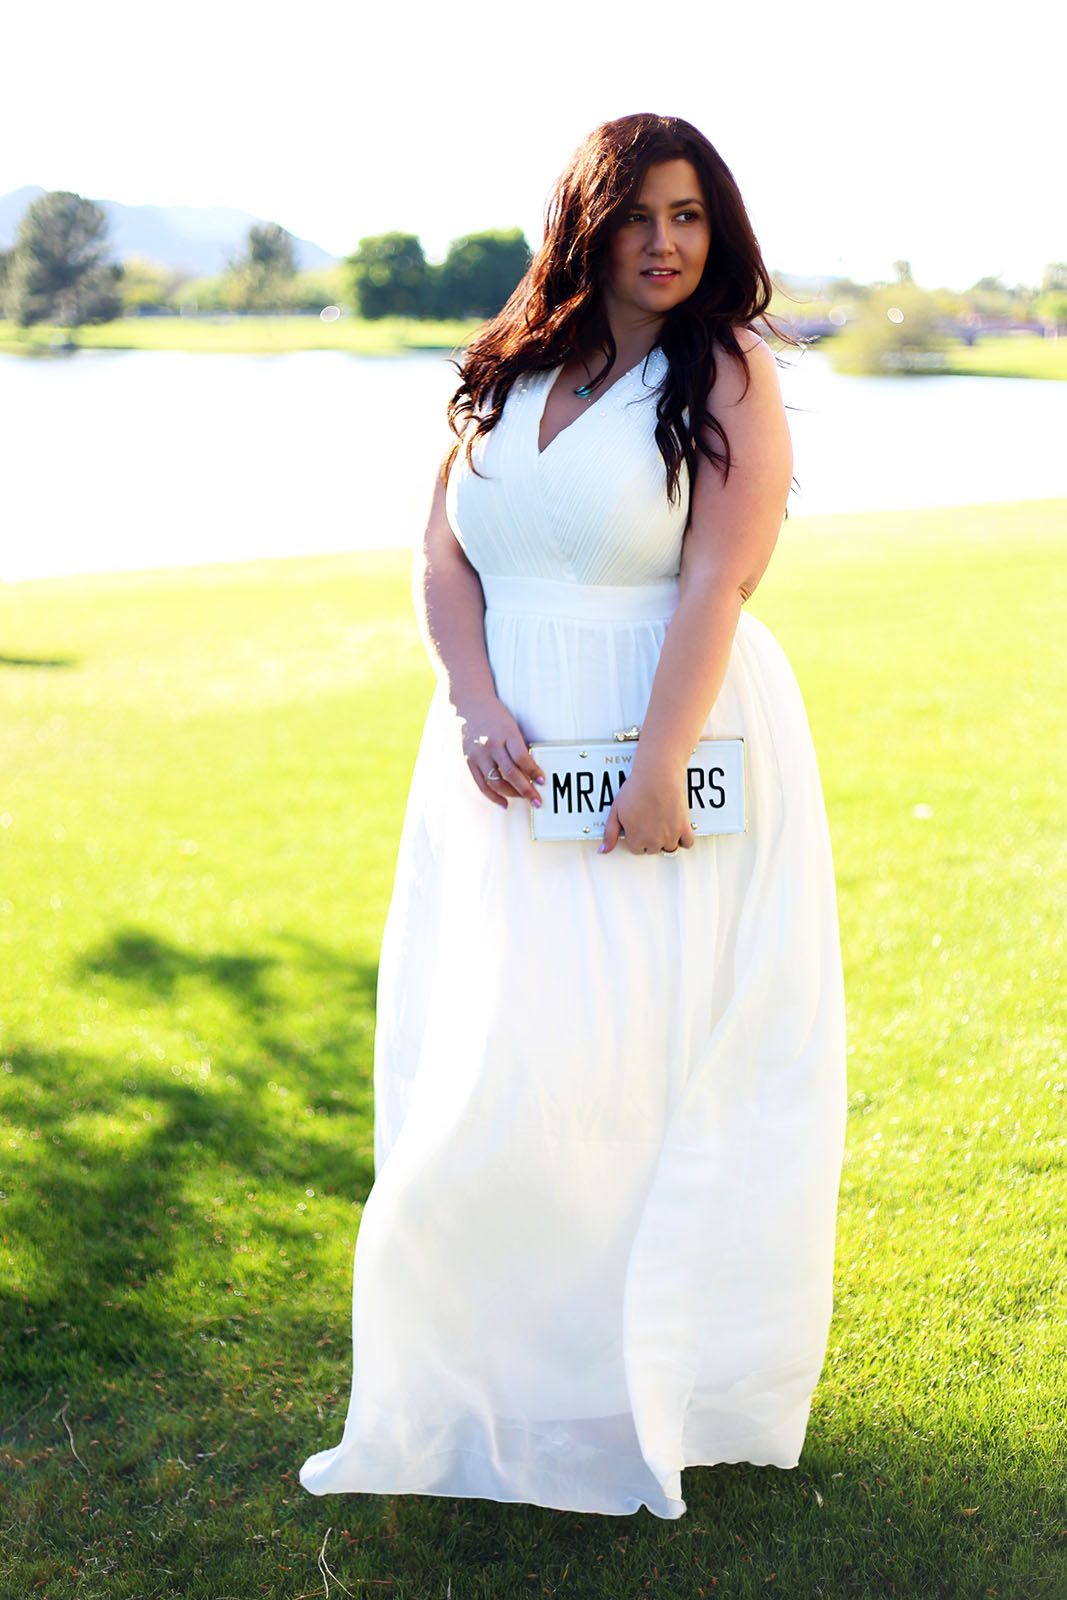 Plus size princess wedding gown dress whimsical white dress wedding